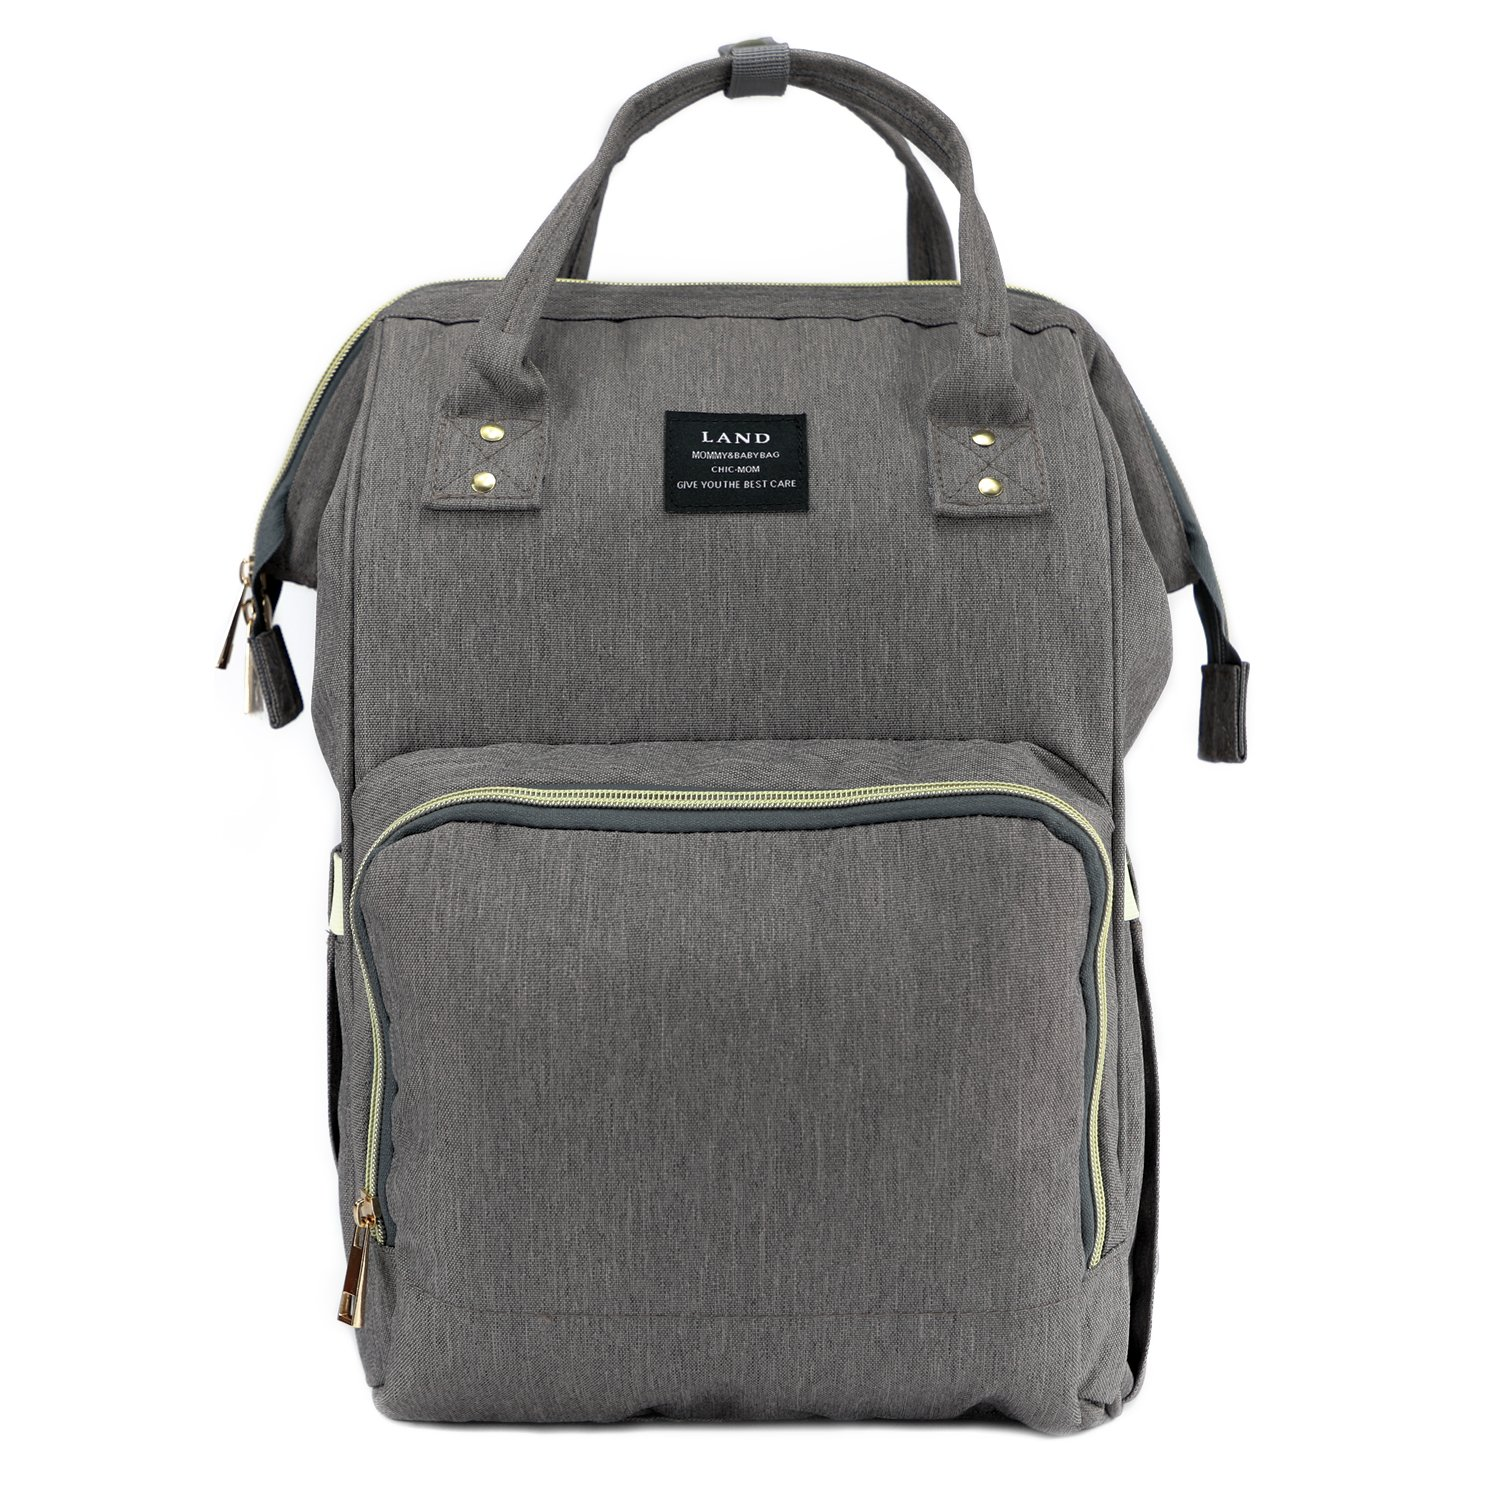 845b8e03e Galleon - Baby Diaper Bag Large Capacity Mommy Backpack Baby Nappy Tote Bags  Multi-Function Travelling Backpack For Mom Travellers Nurses Students (Grey)